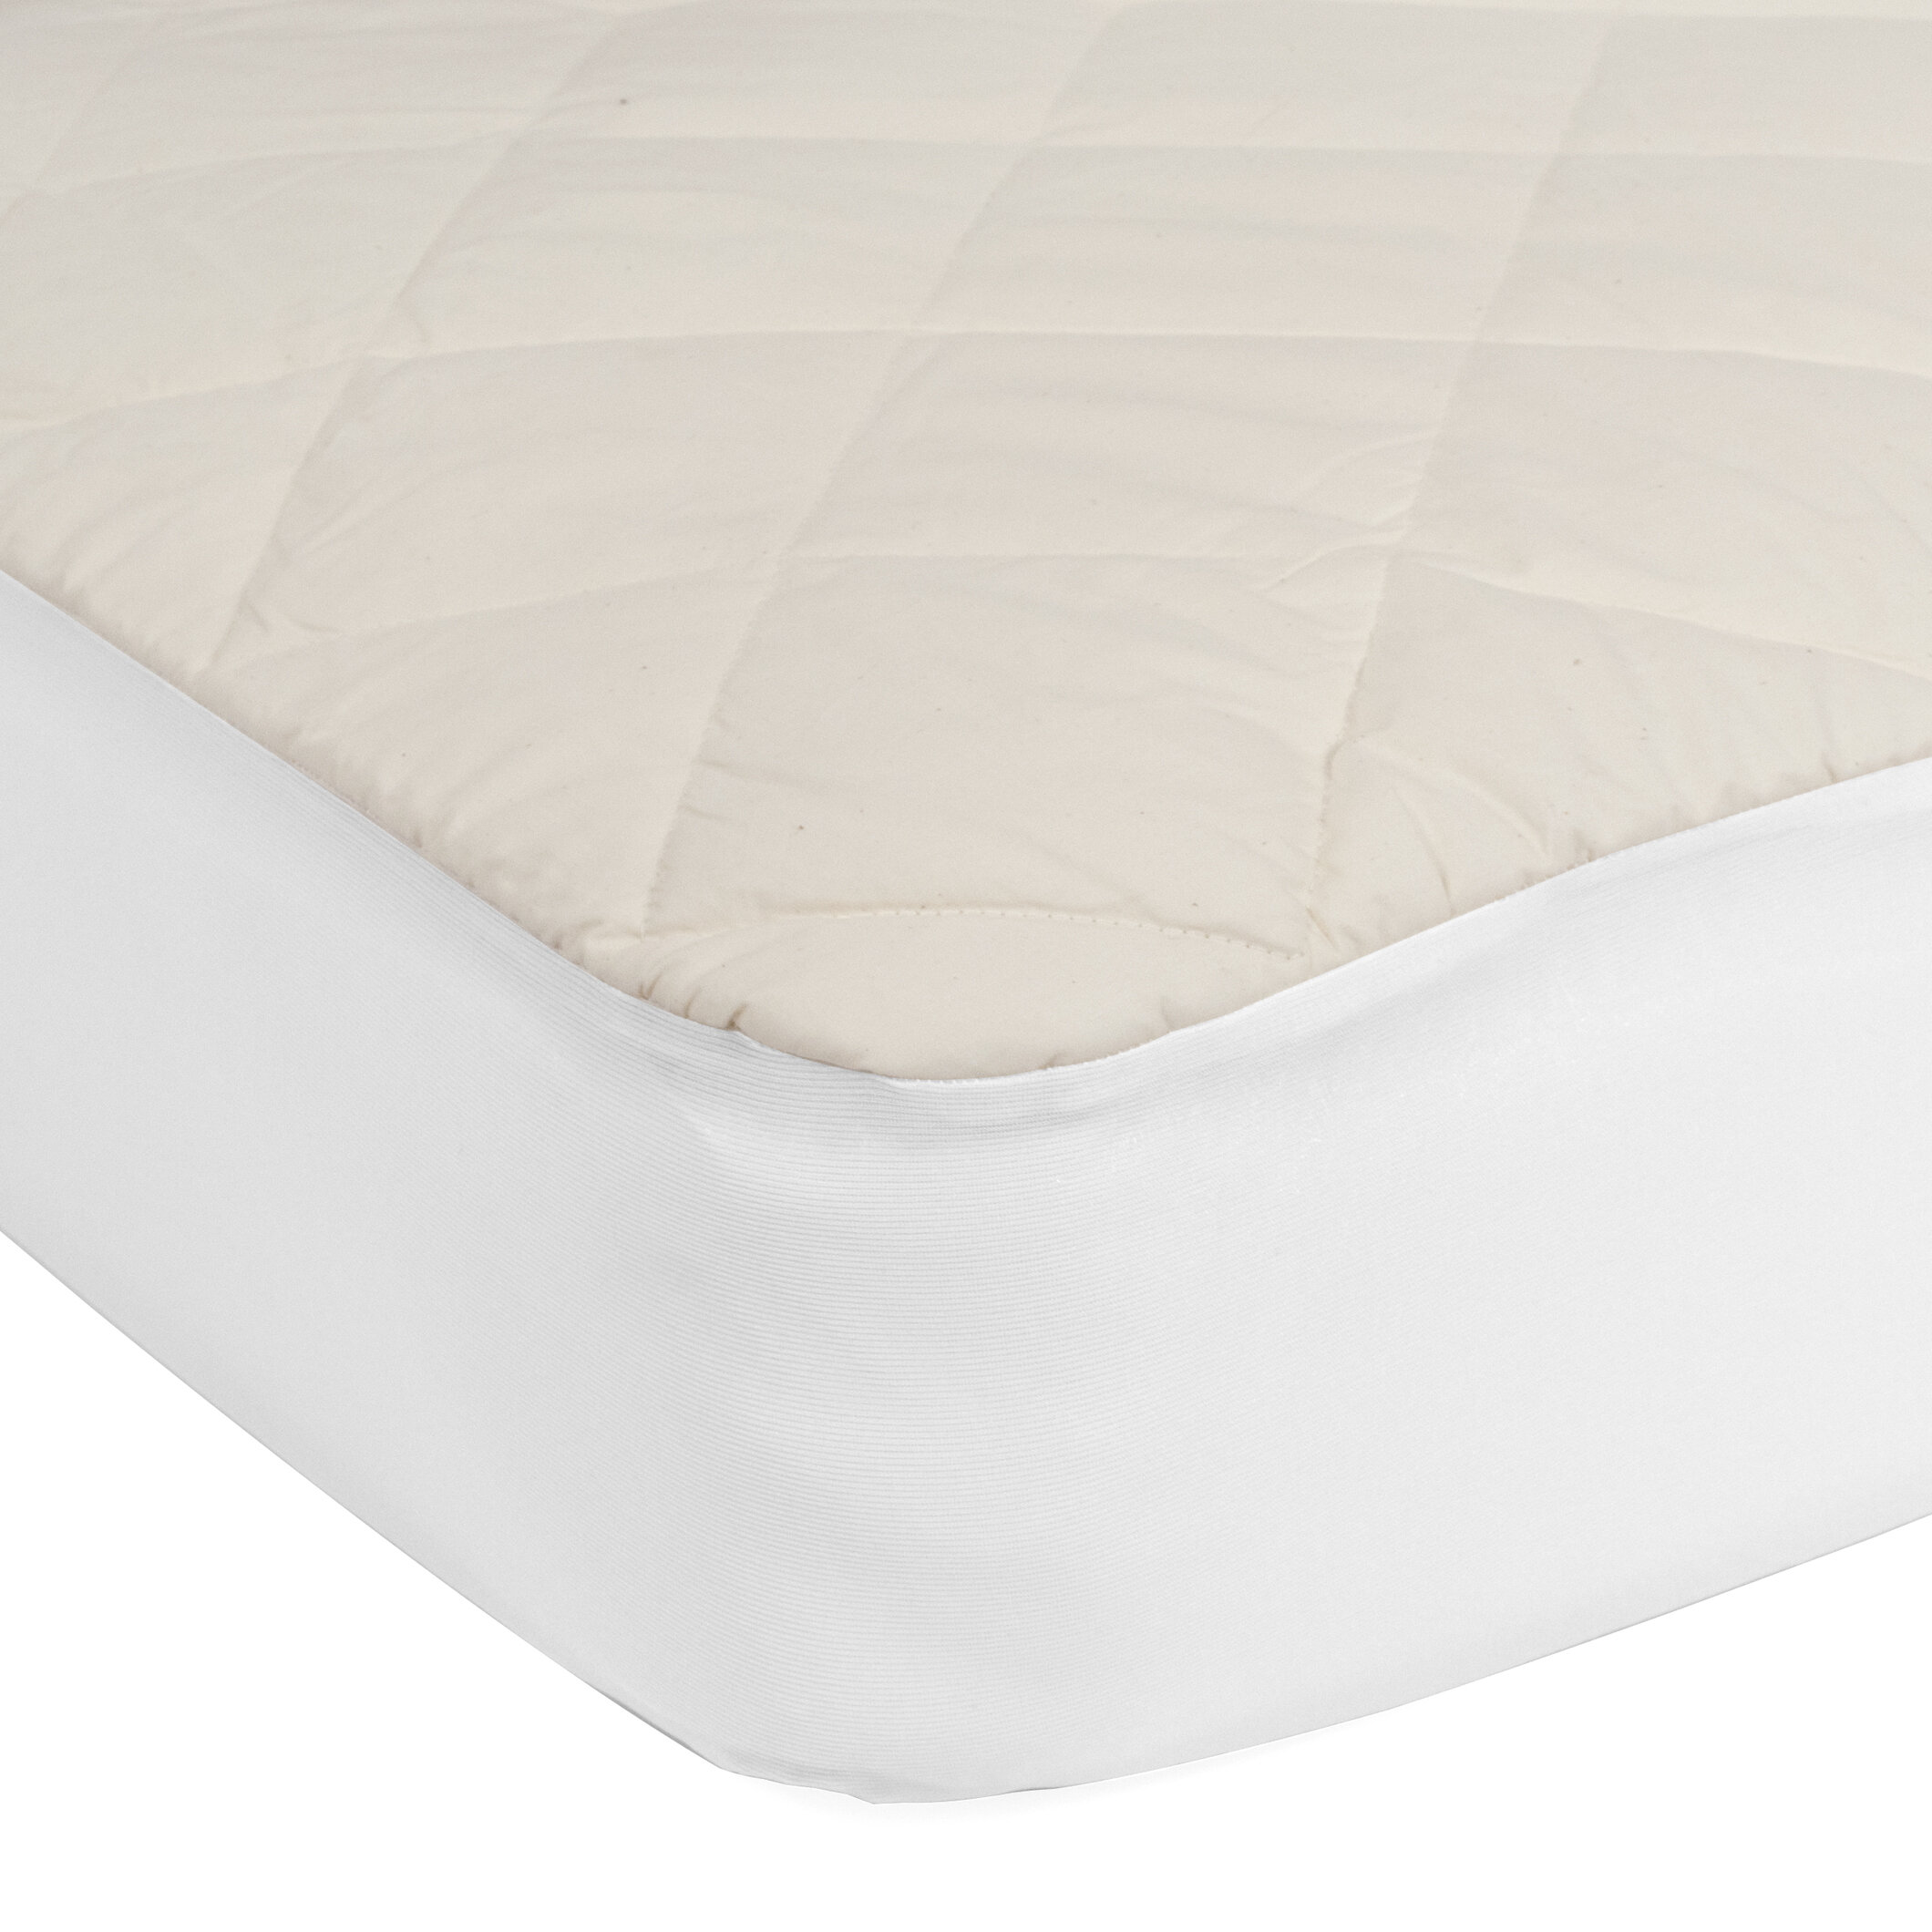 Very Helpful Crib Mattress Pad Sealy Quilted Crib Mattress Pad u0026 Reviews | Wayfair